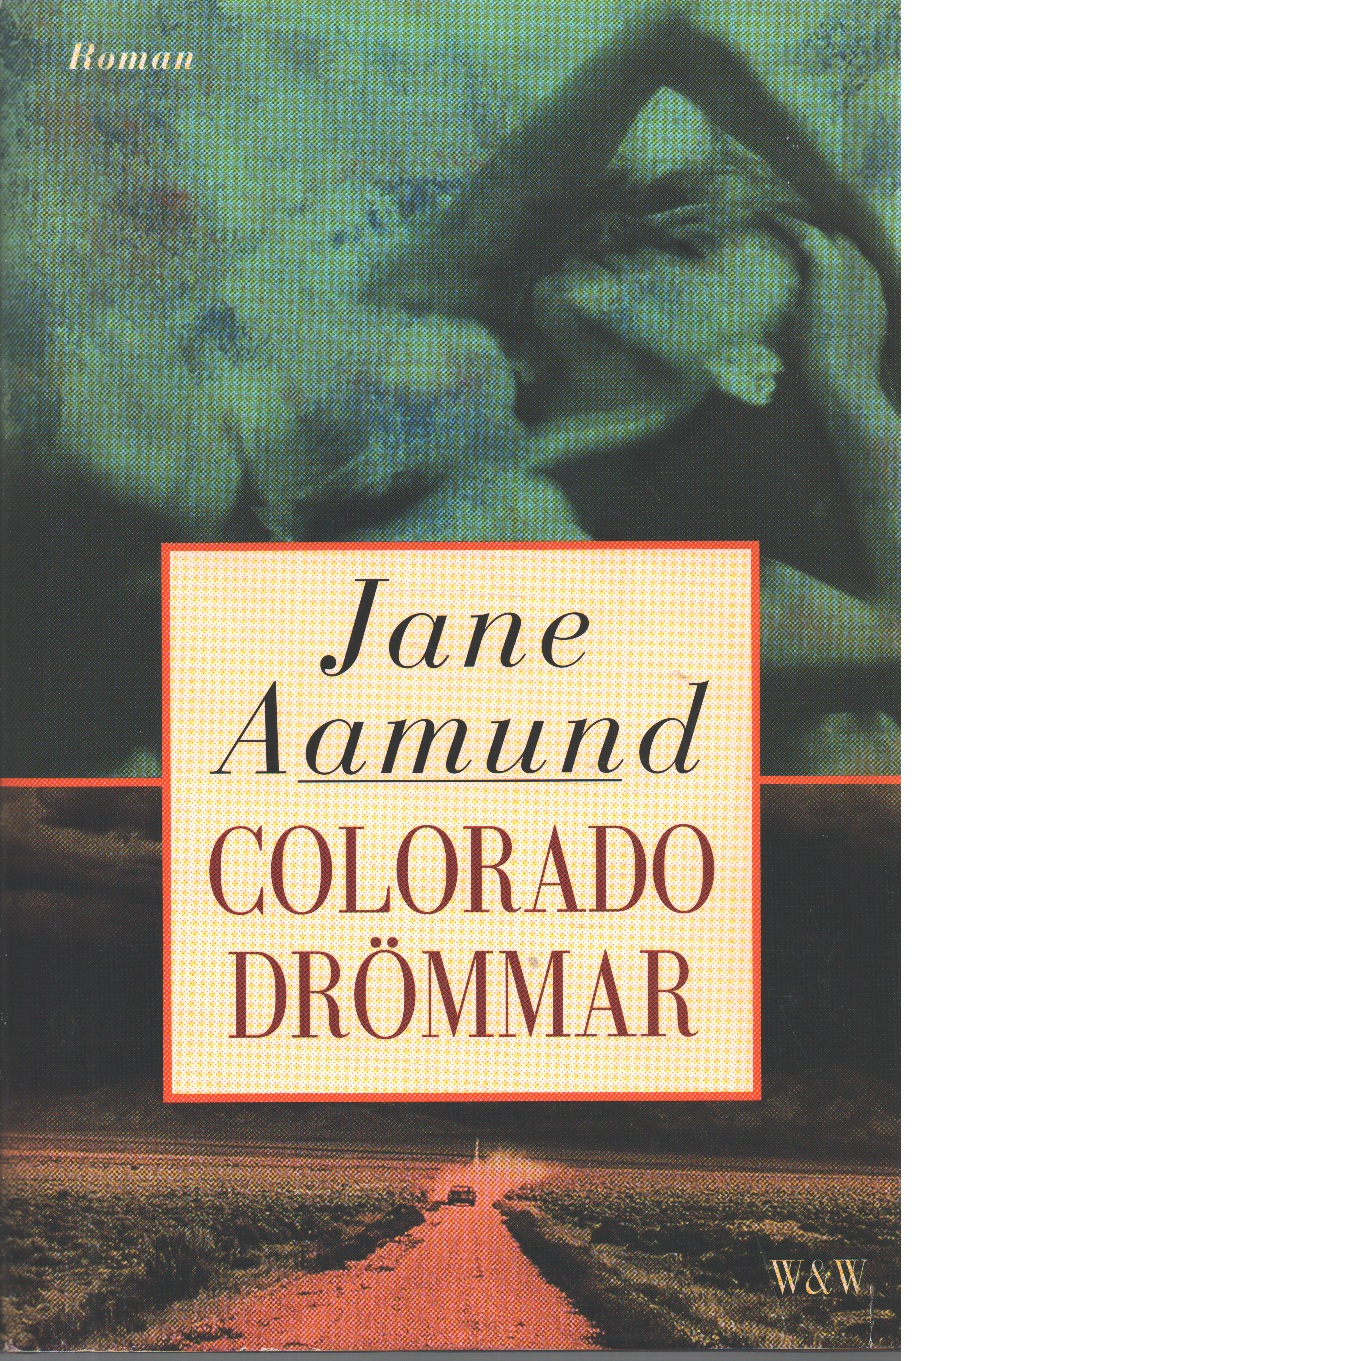 Coloradodrömmar - Aamund, Jane